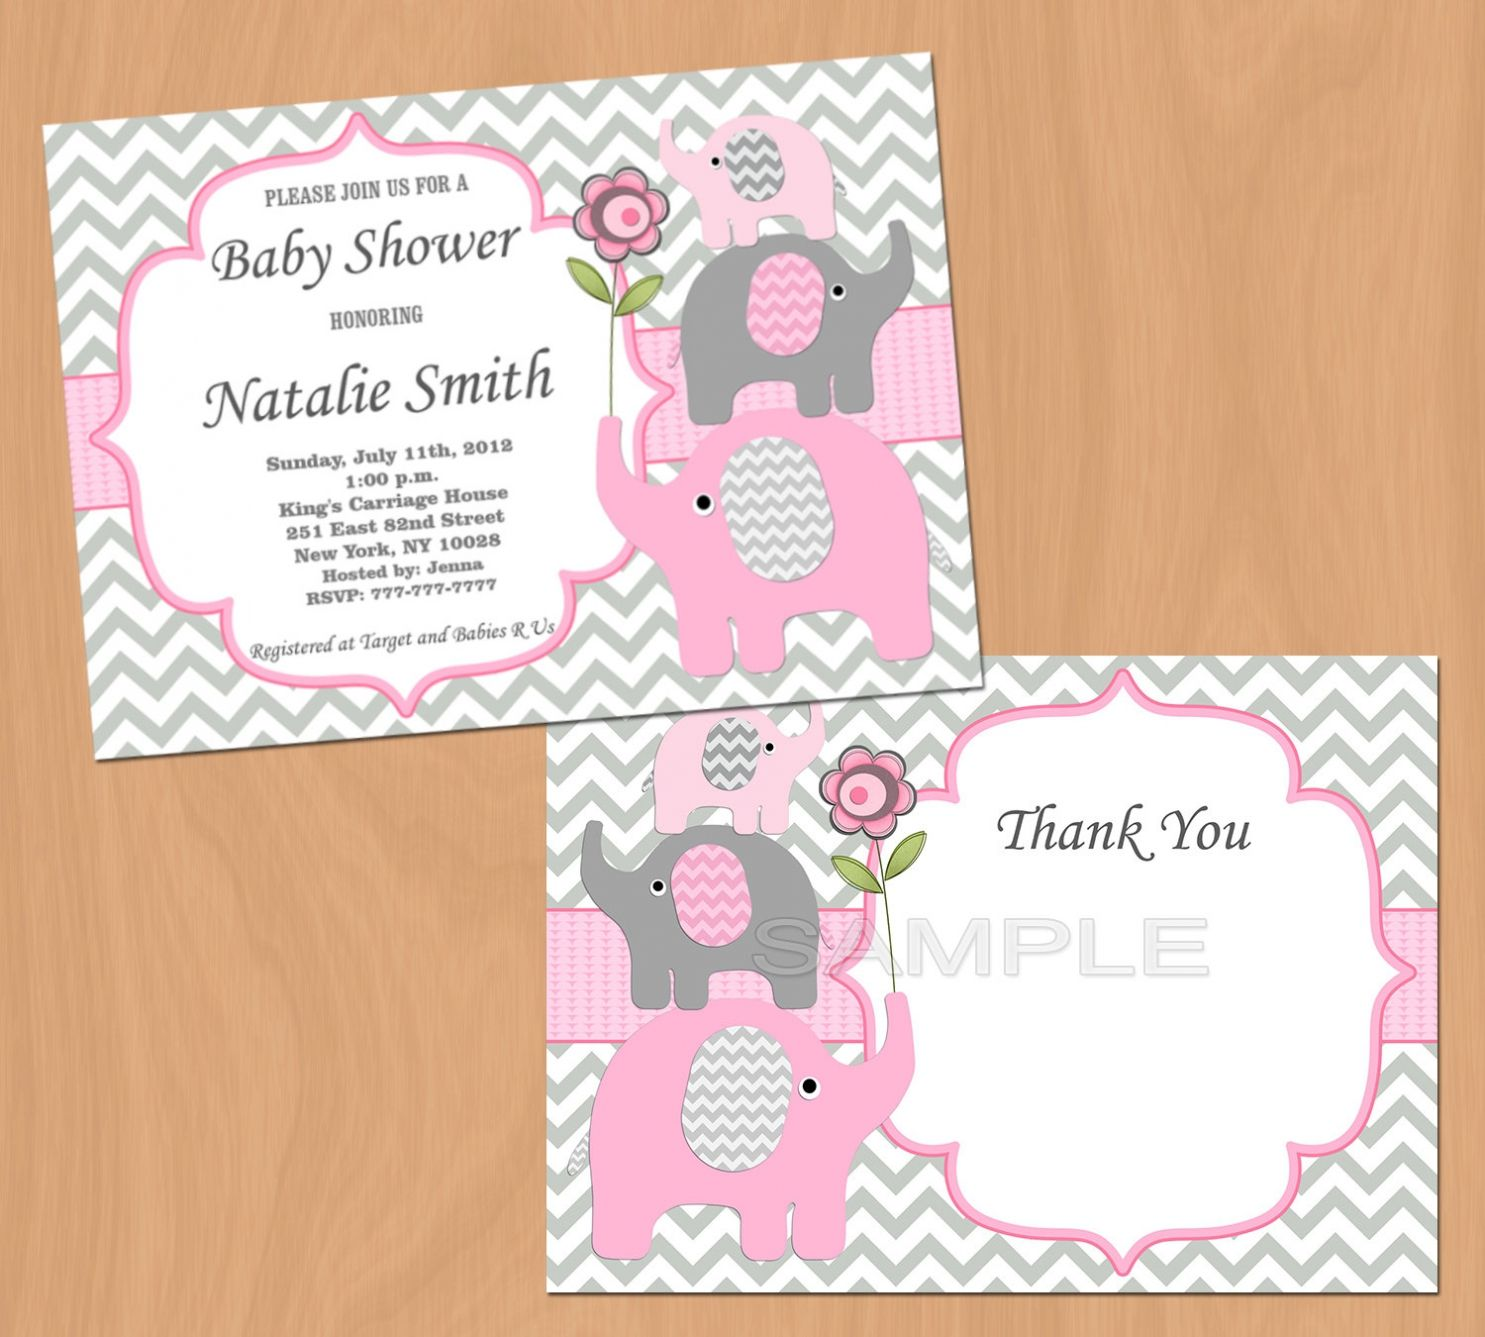 Cheap Baby Shower Invitations In Bulk To Give Additional Inspiration